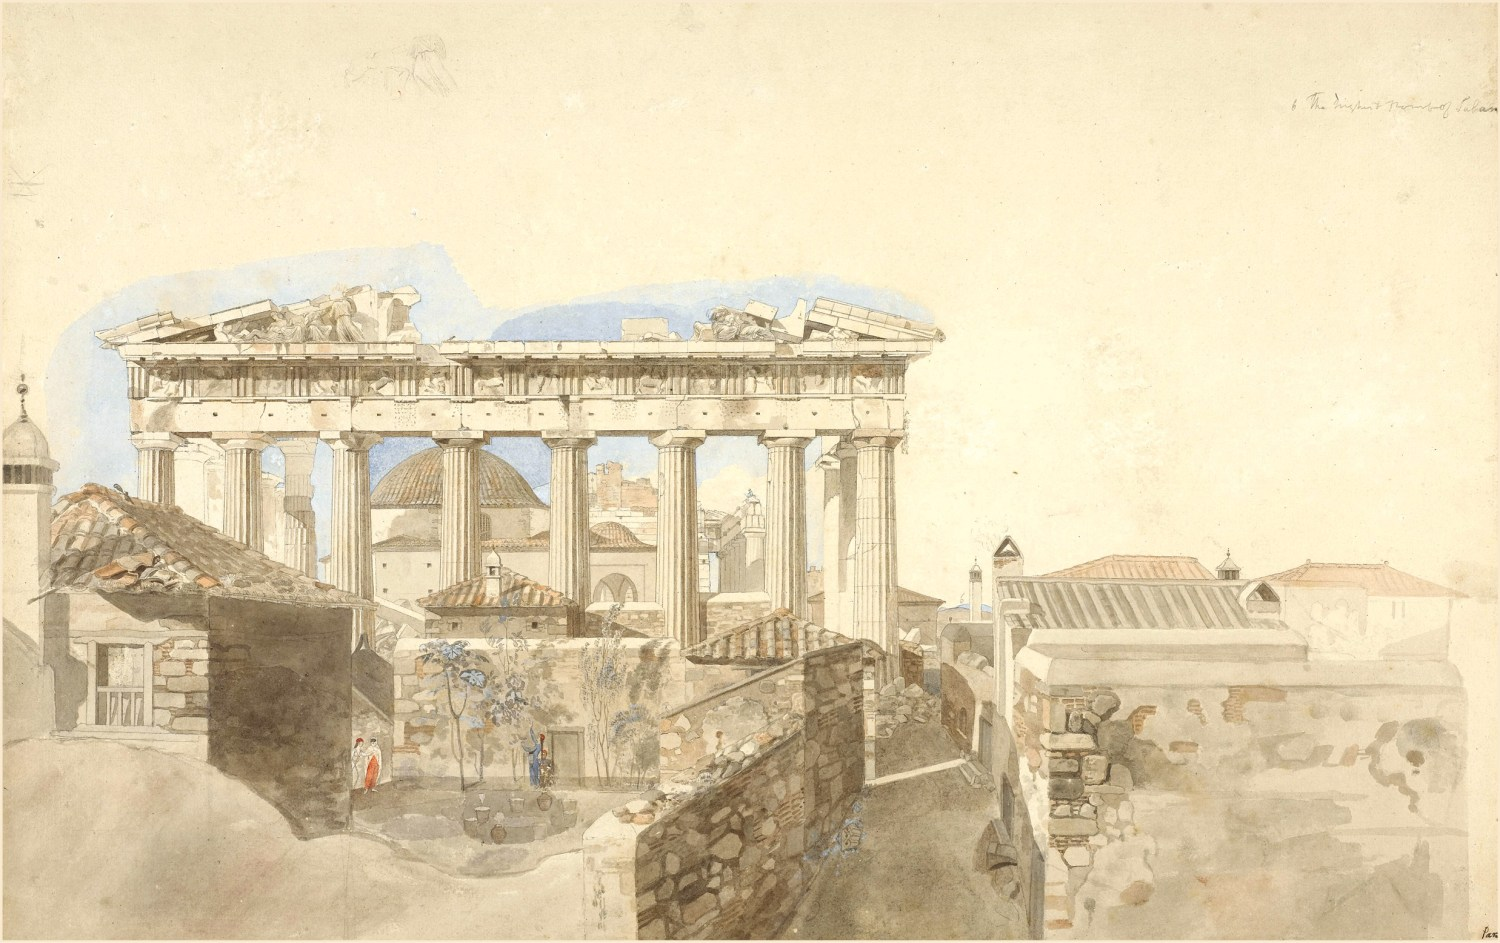 ABOVE View of the Parthenon from the east, 1765-1766. Pen and grey ink and watercolour, with body colour, over graphite. Size: 360 x 552mm